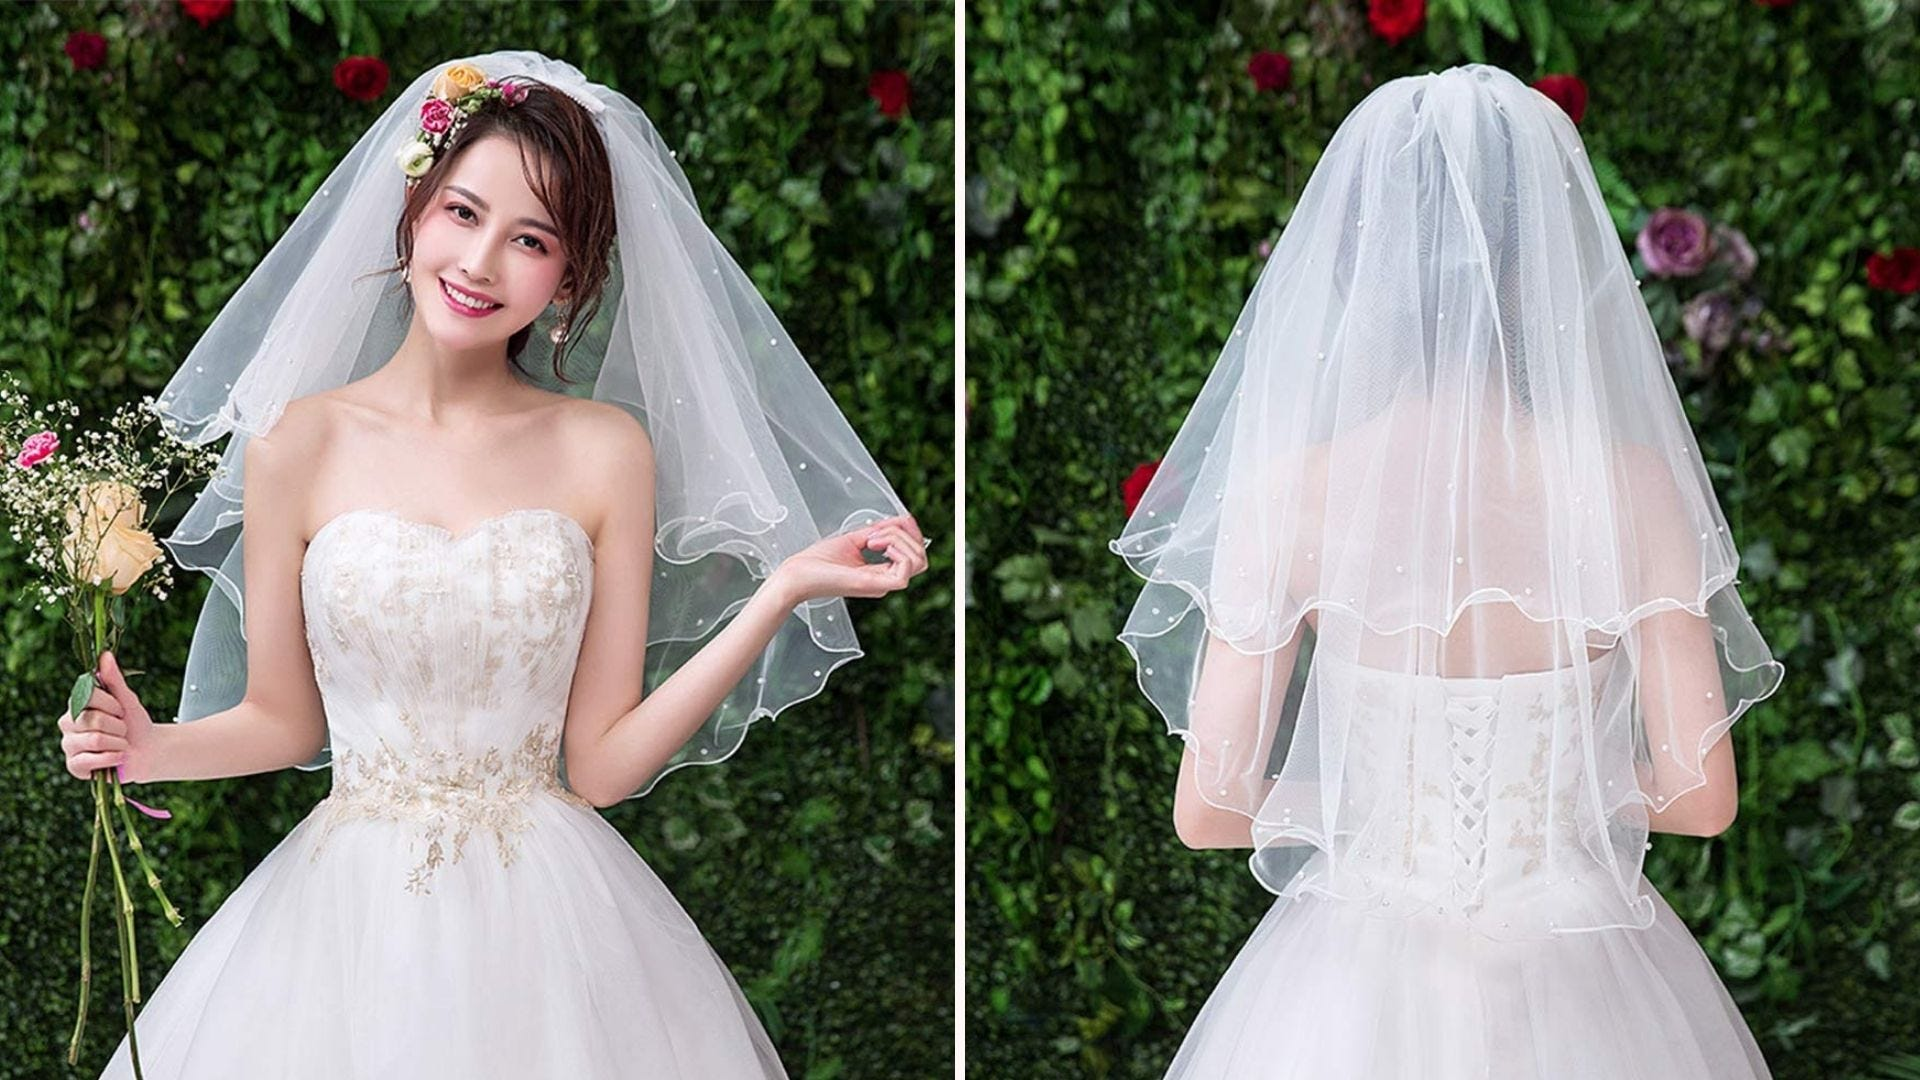 a bride in her gown and a three-tiered veil that goes to the waist